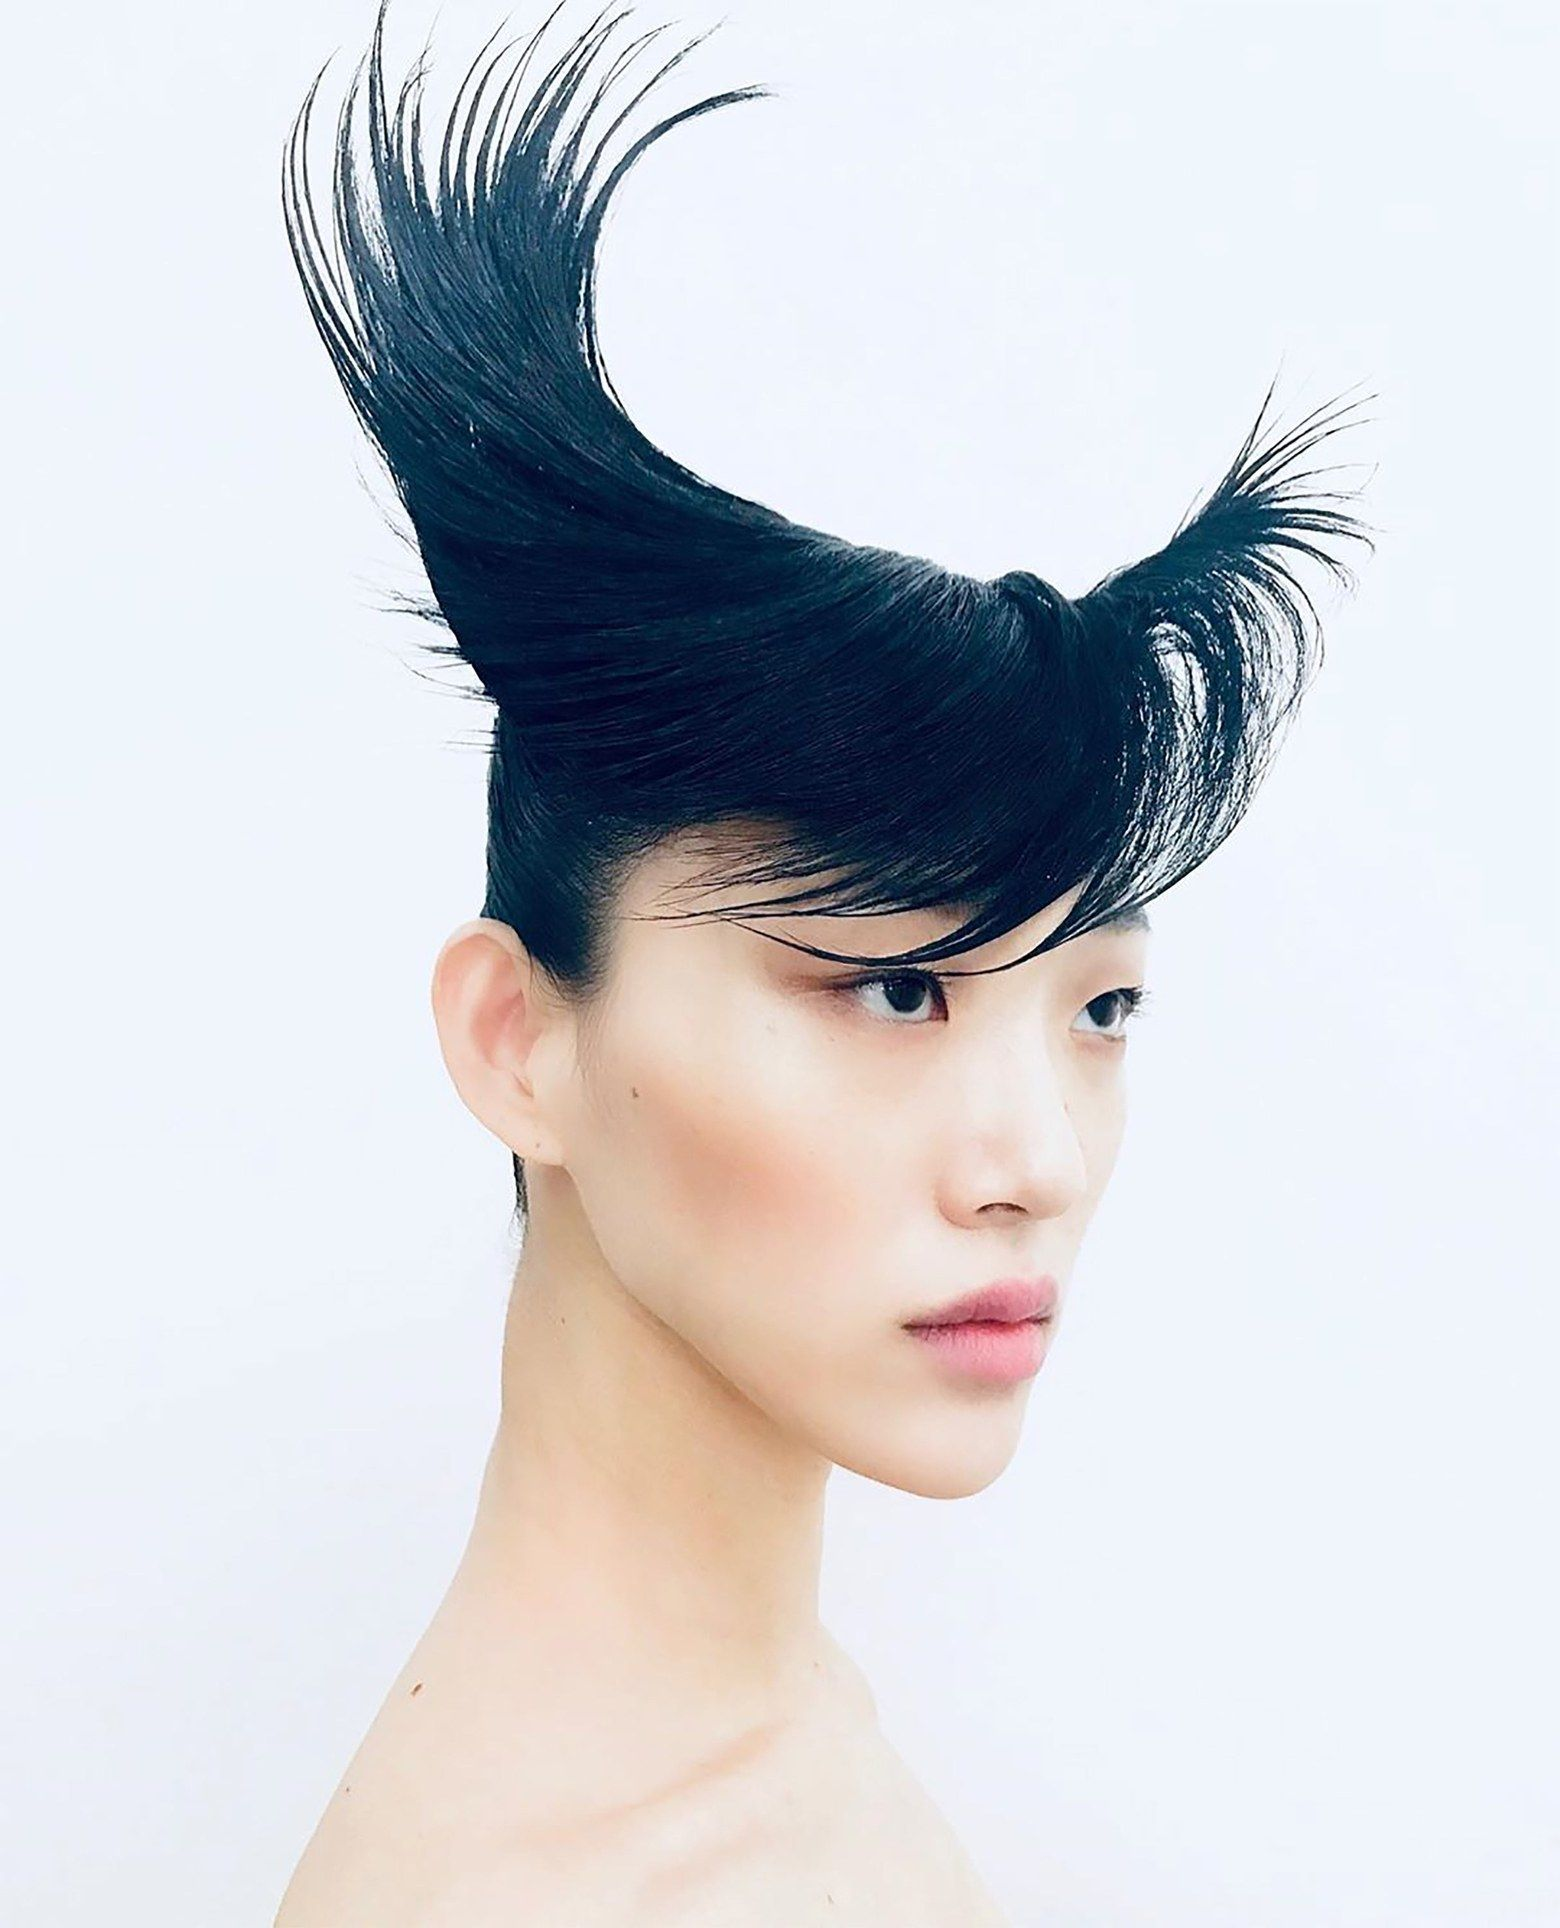 Givenchy Couture Puts An Aerodynamic Twist On Punk Hair In Paris Punk Hair Hair Givenchy Couture